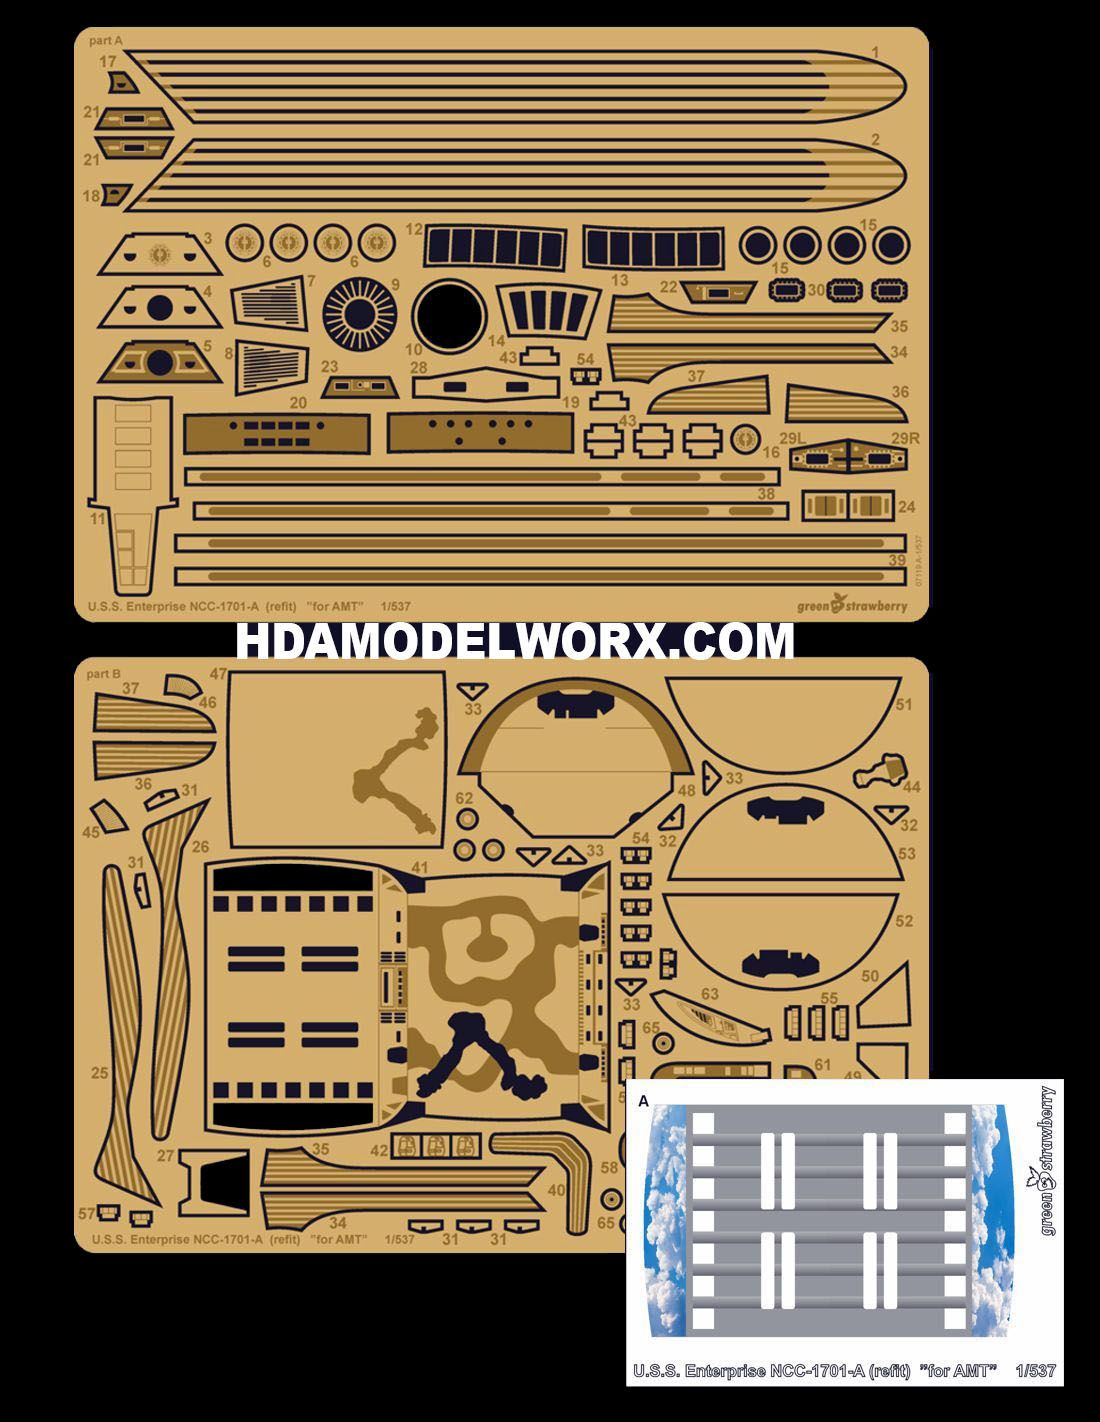 U.S.S. Enterprise NCC-1701-A (refit) photoetch set for the AMT 537 Scale Model Kit by GREEN STRAWBERRY